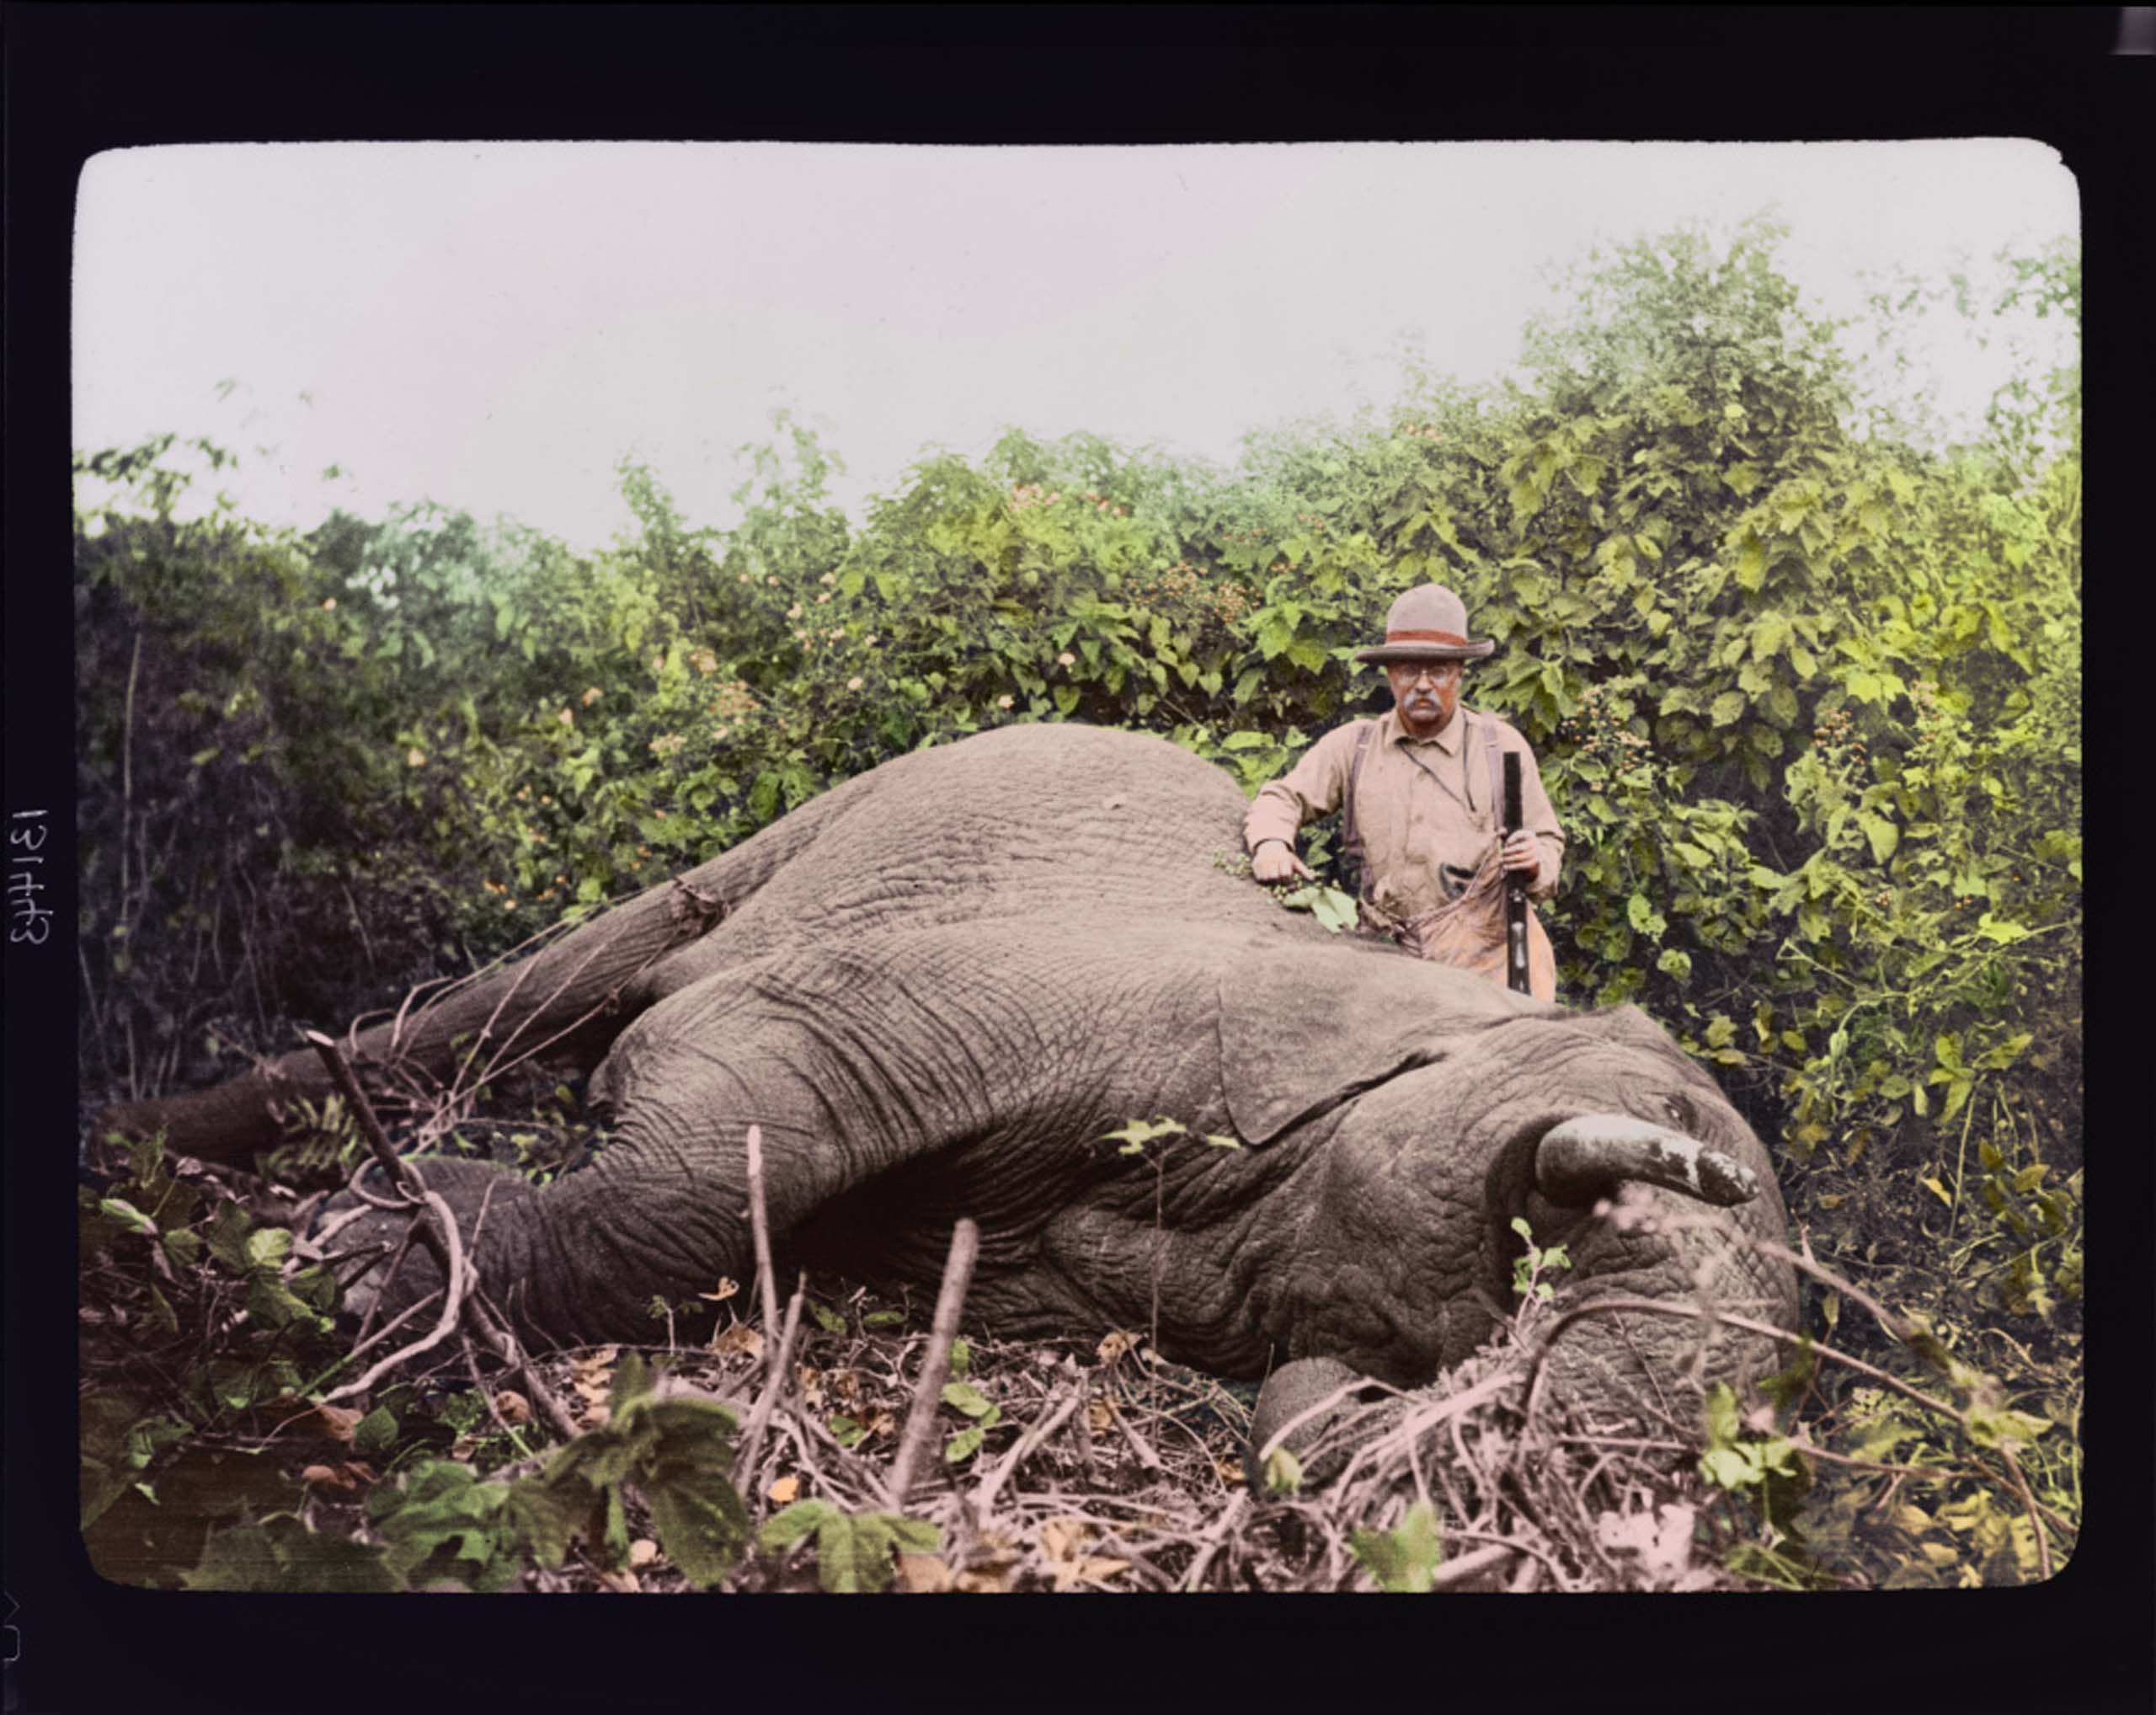 Col. Theodore Roosevelt with a dead elephant at Meru, Kenya.                                                                      <i>The Siena Research Institute (SRI) at Siena College often releases complex expert rankings of all U.S. Presidents. In 2010, the SRI Survey Ranked Roosevelt the #2 President of All Time. Roosevelt took top marks in the survey's categories for 'Imagination,' 'Willingness to Take Risks', 'Court Appointments' and 'Intelligence.'</i>